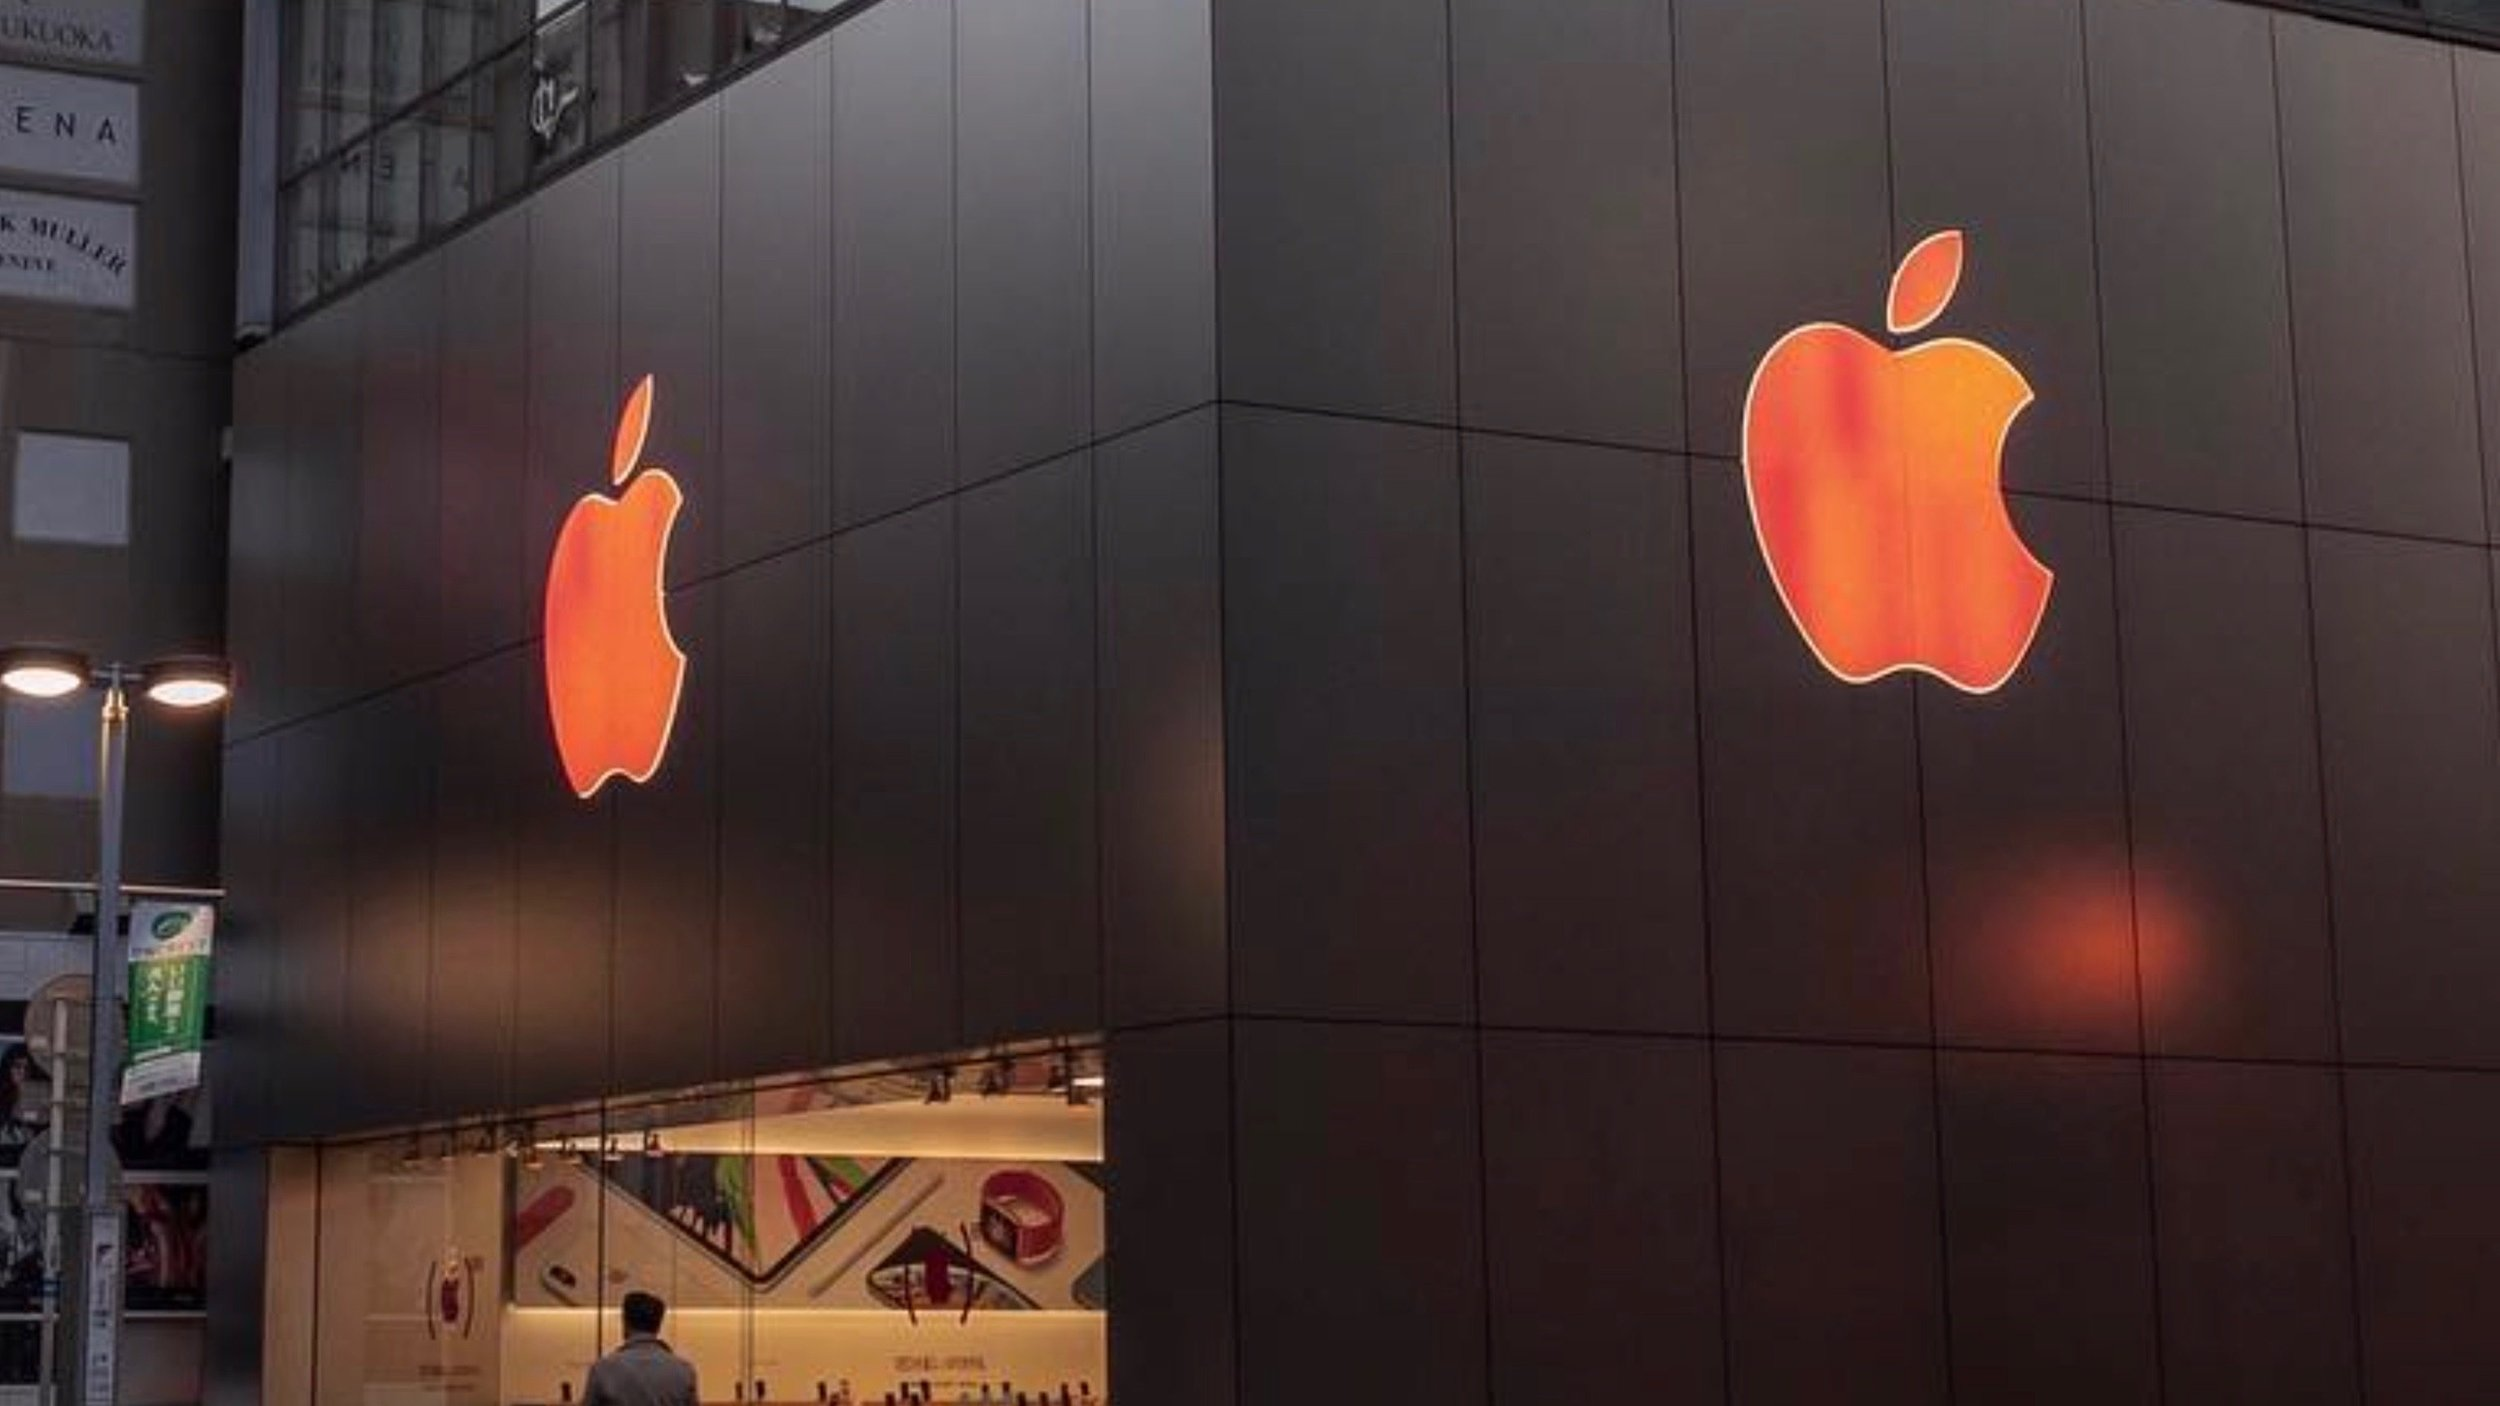 APPLE STORE LOGOS GO RED FOR WORLD AIDS DAY AS APPLE PROMOTES (RED) W/ APP STORE STORIES